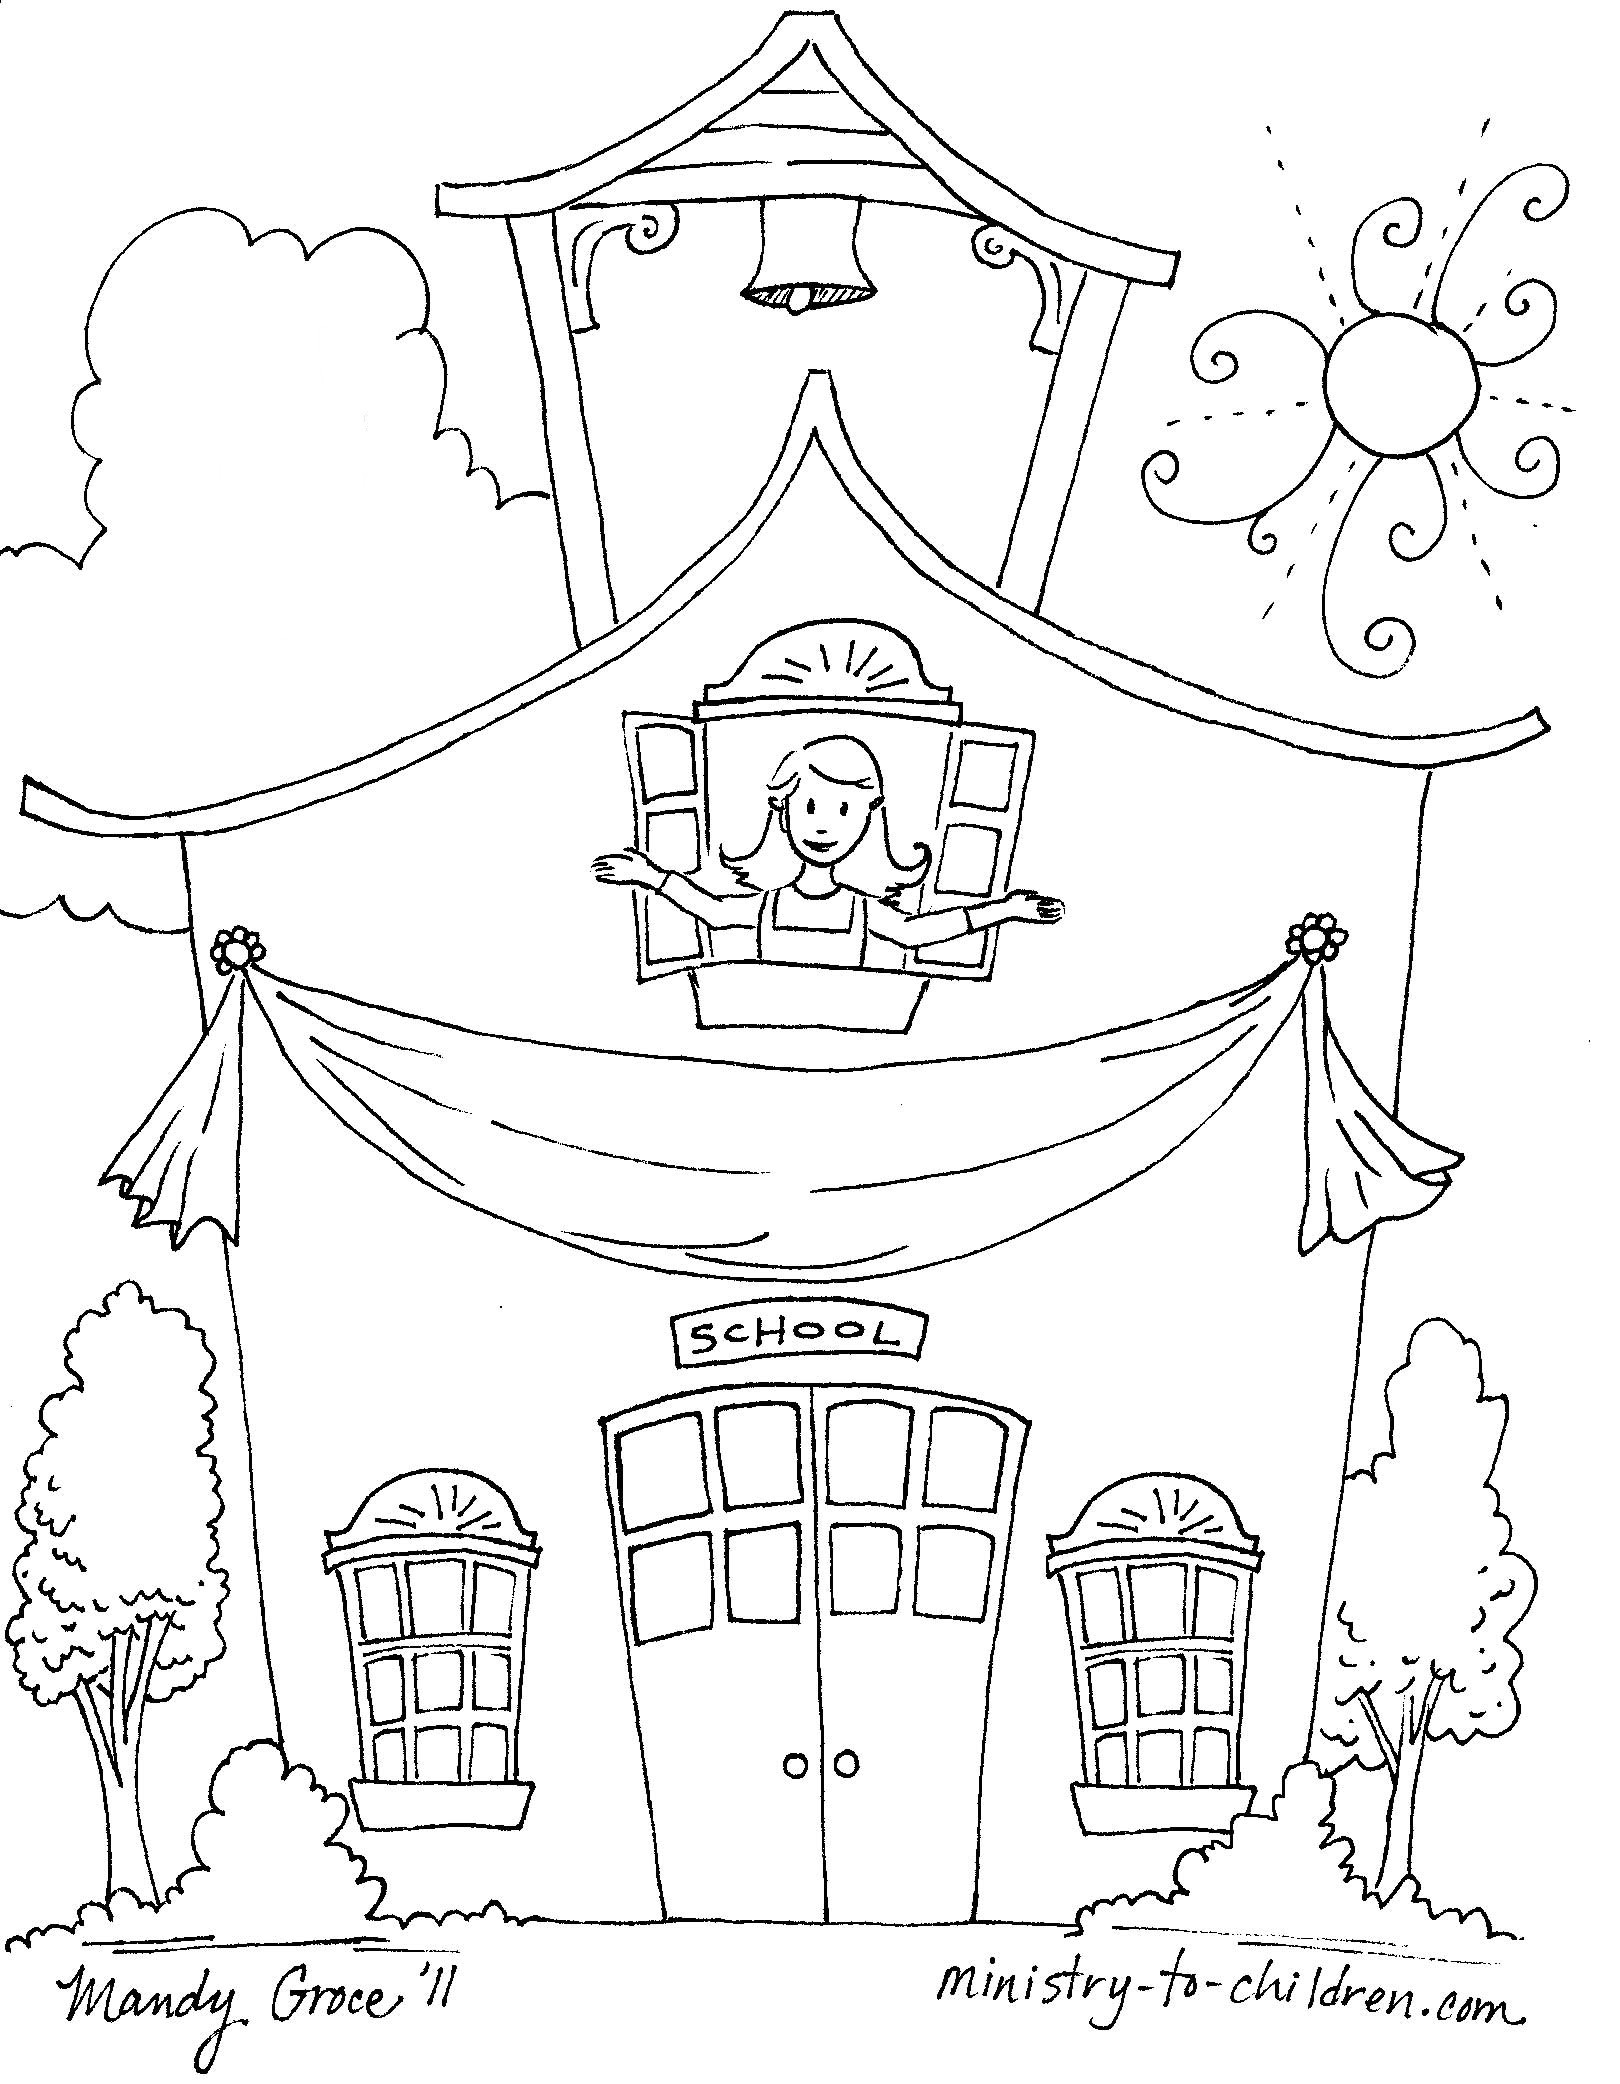 Last Day School Coloring Pages School Coloring Page Printable Gallery Of Fresh First Day School Coloring Sheets Free Printable Pages Kids Printable